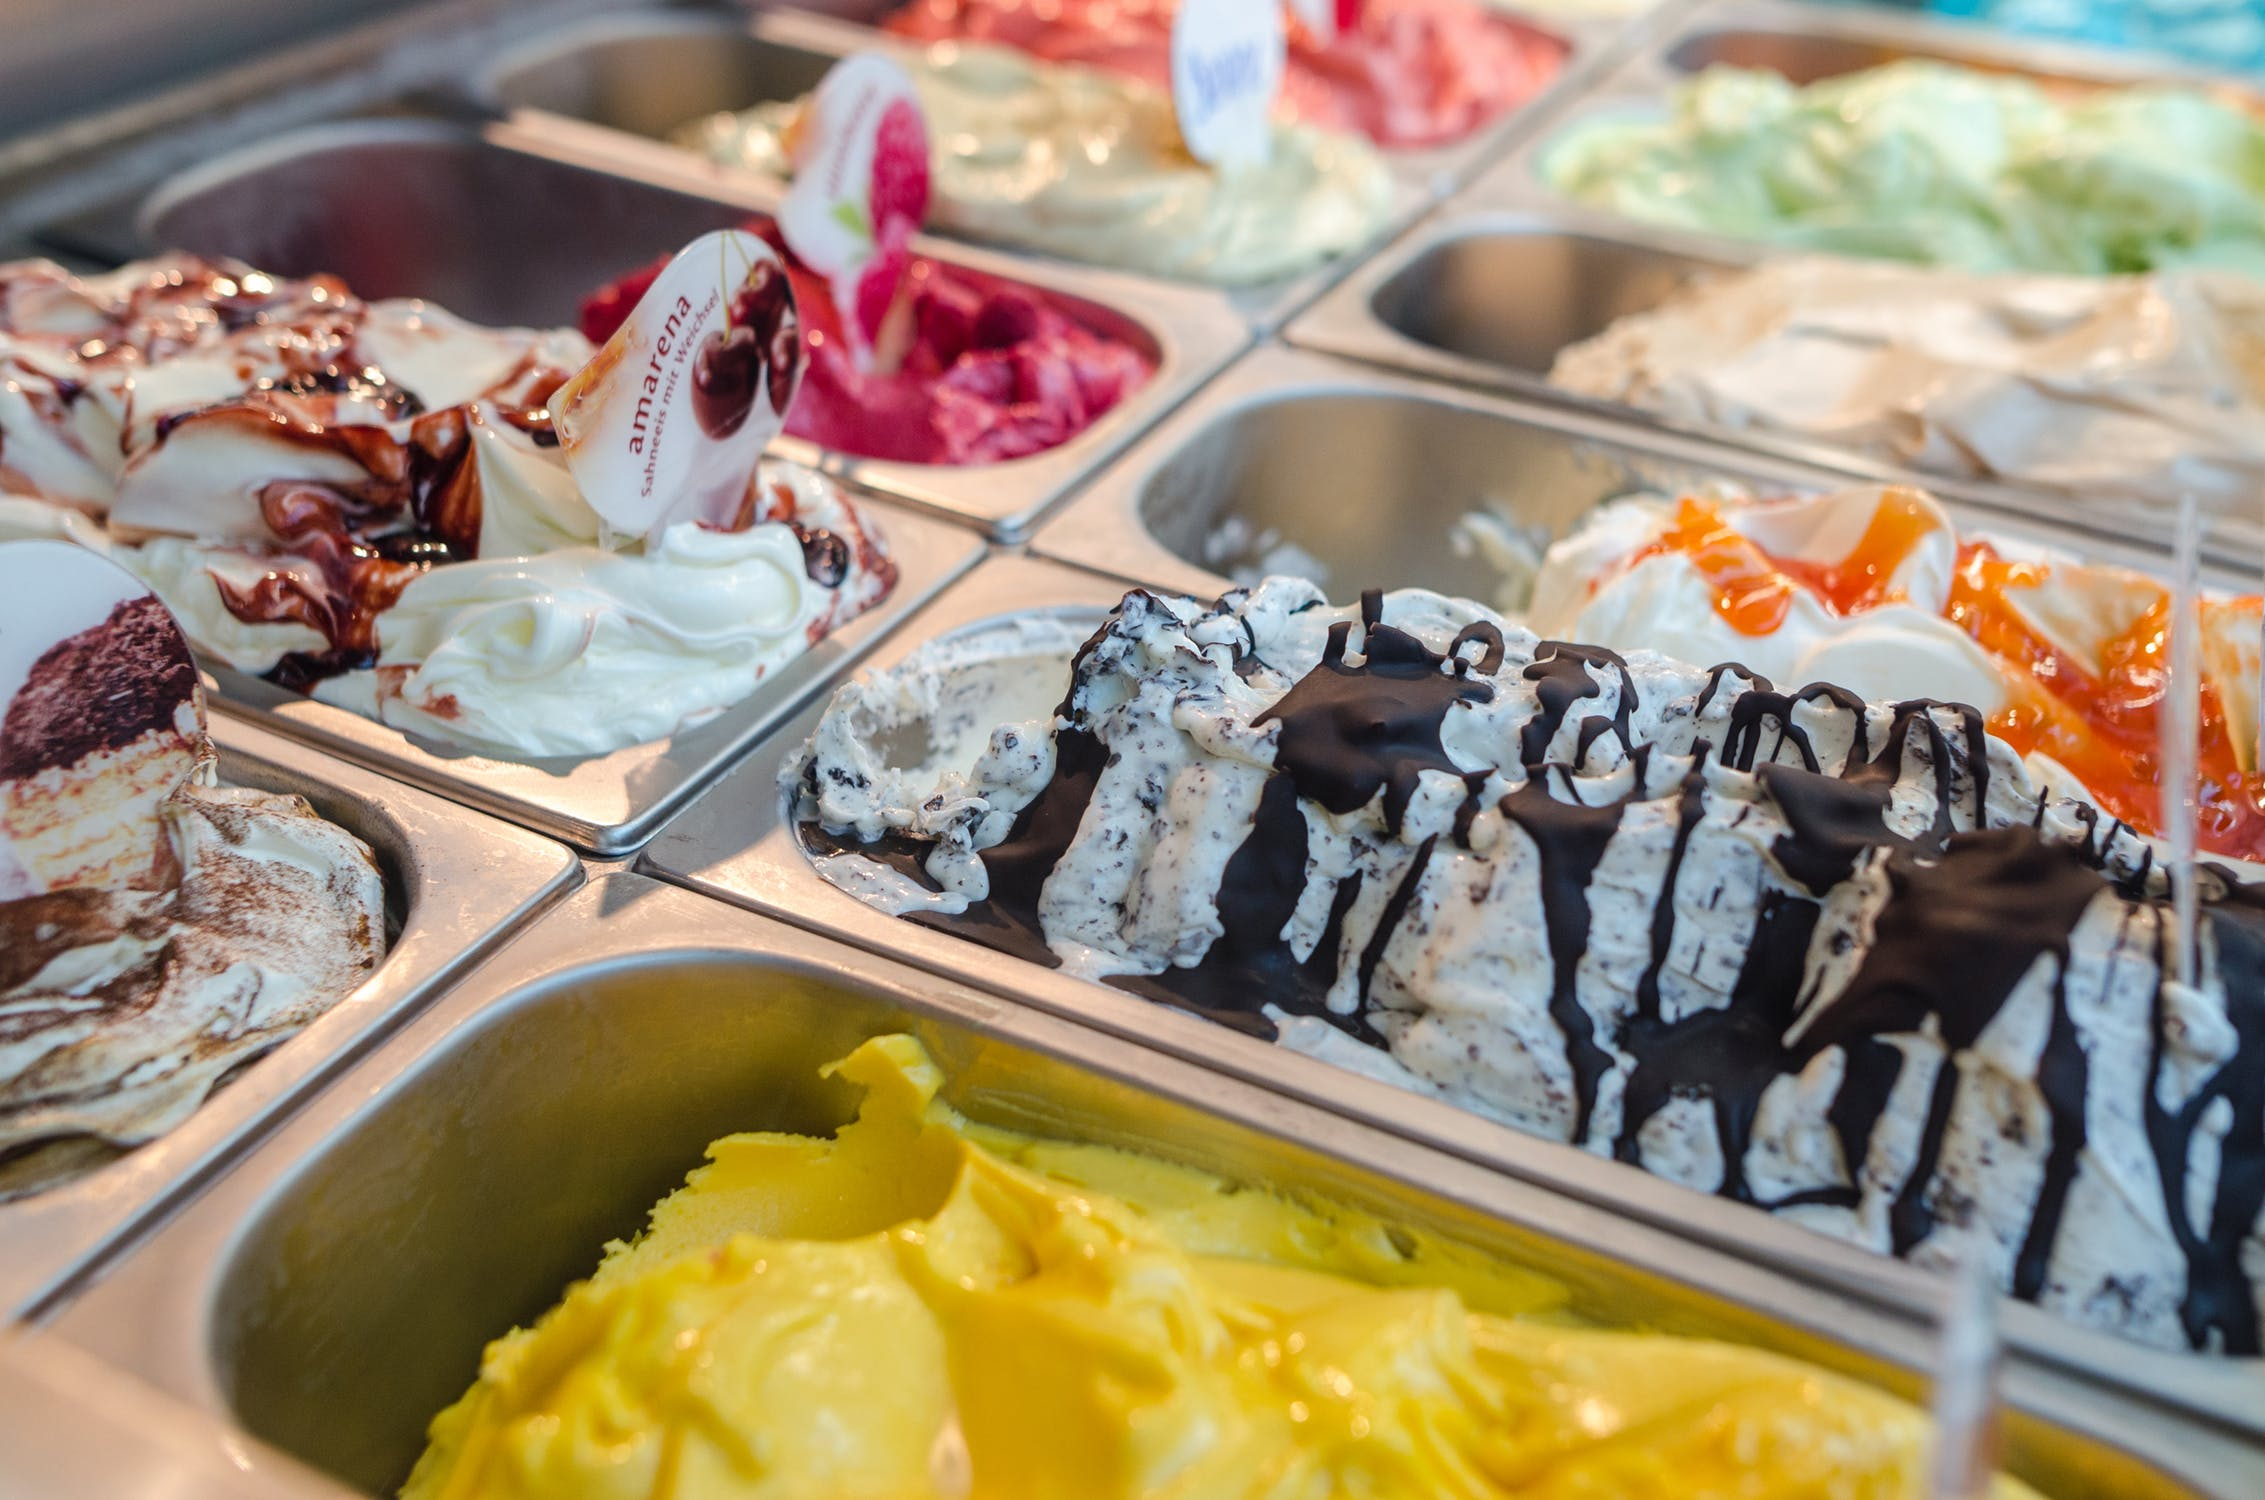 Delray beach Gelato Selection in display case